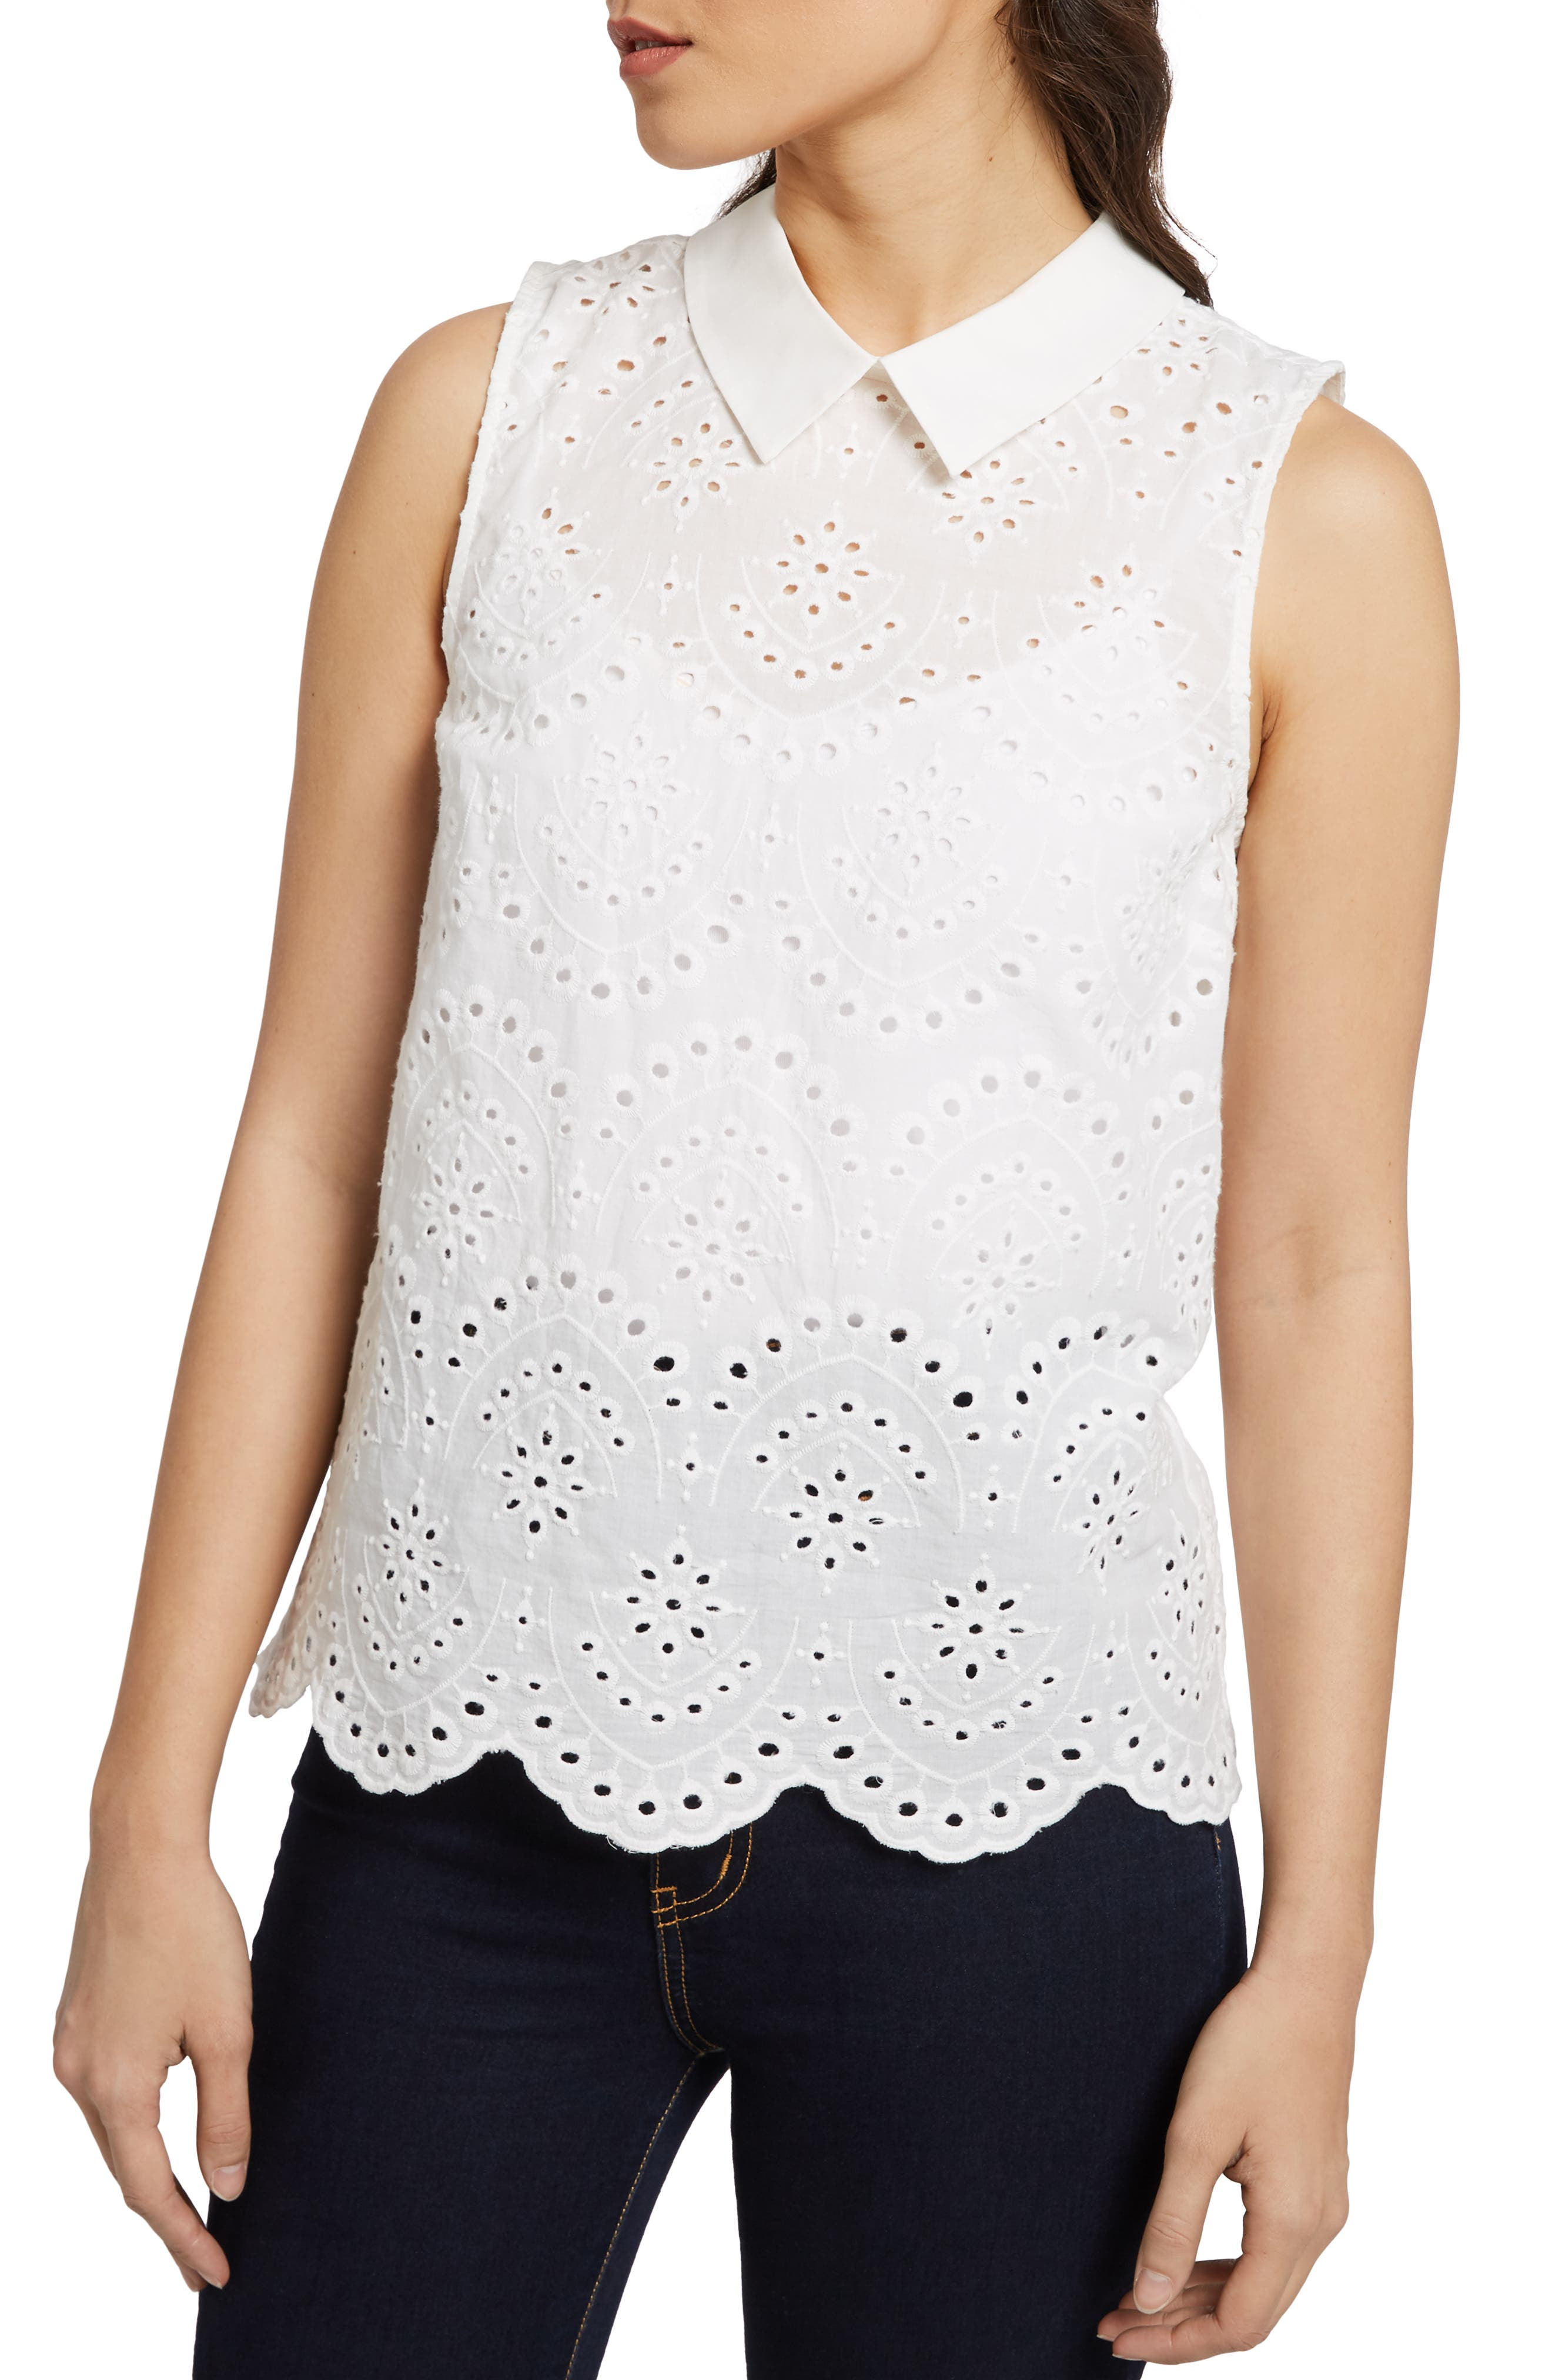 MODCLOTH Eyelet in the Sun Top, Main, color, WHITE